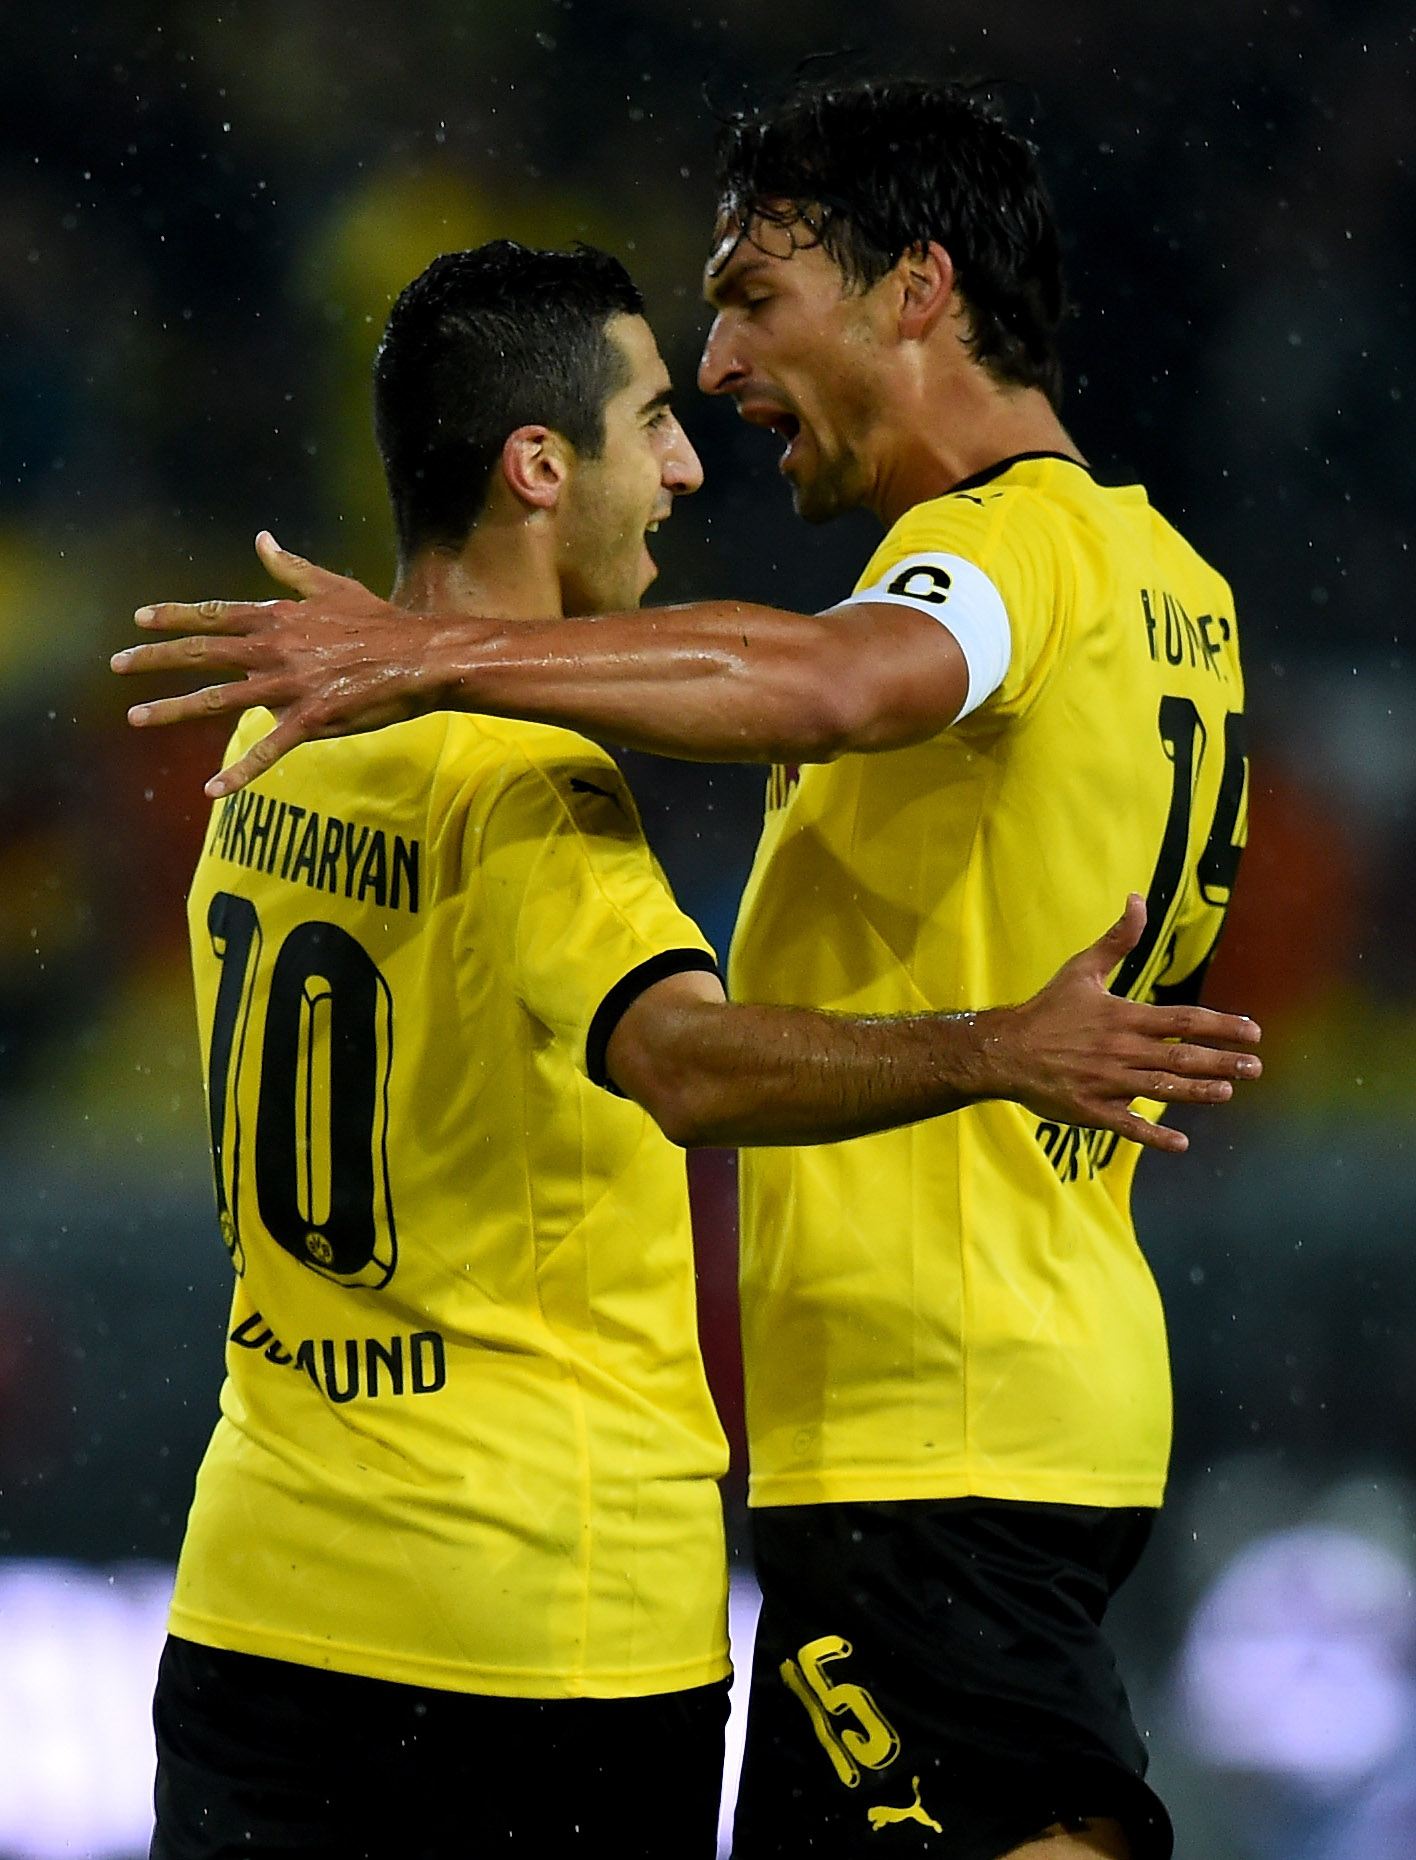 Mats Hummels insists getting the best out of Manchester United's Henrikh Mkhitaryan is 'easy'